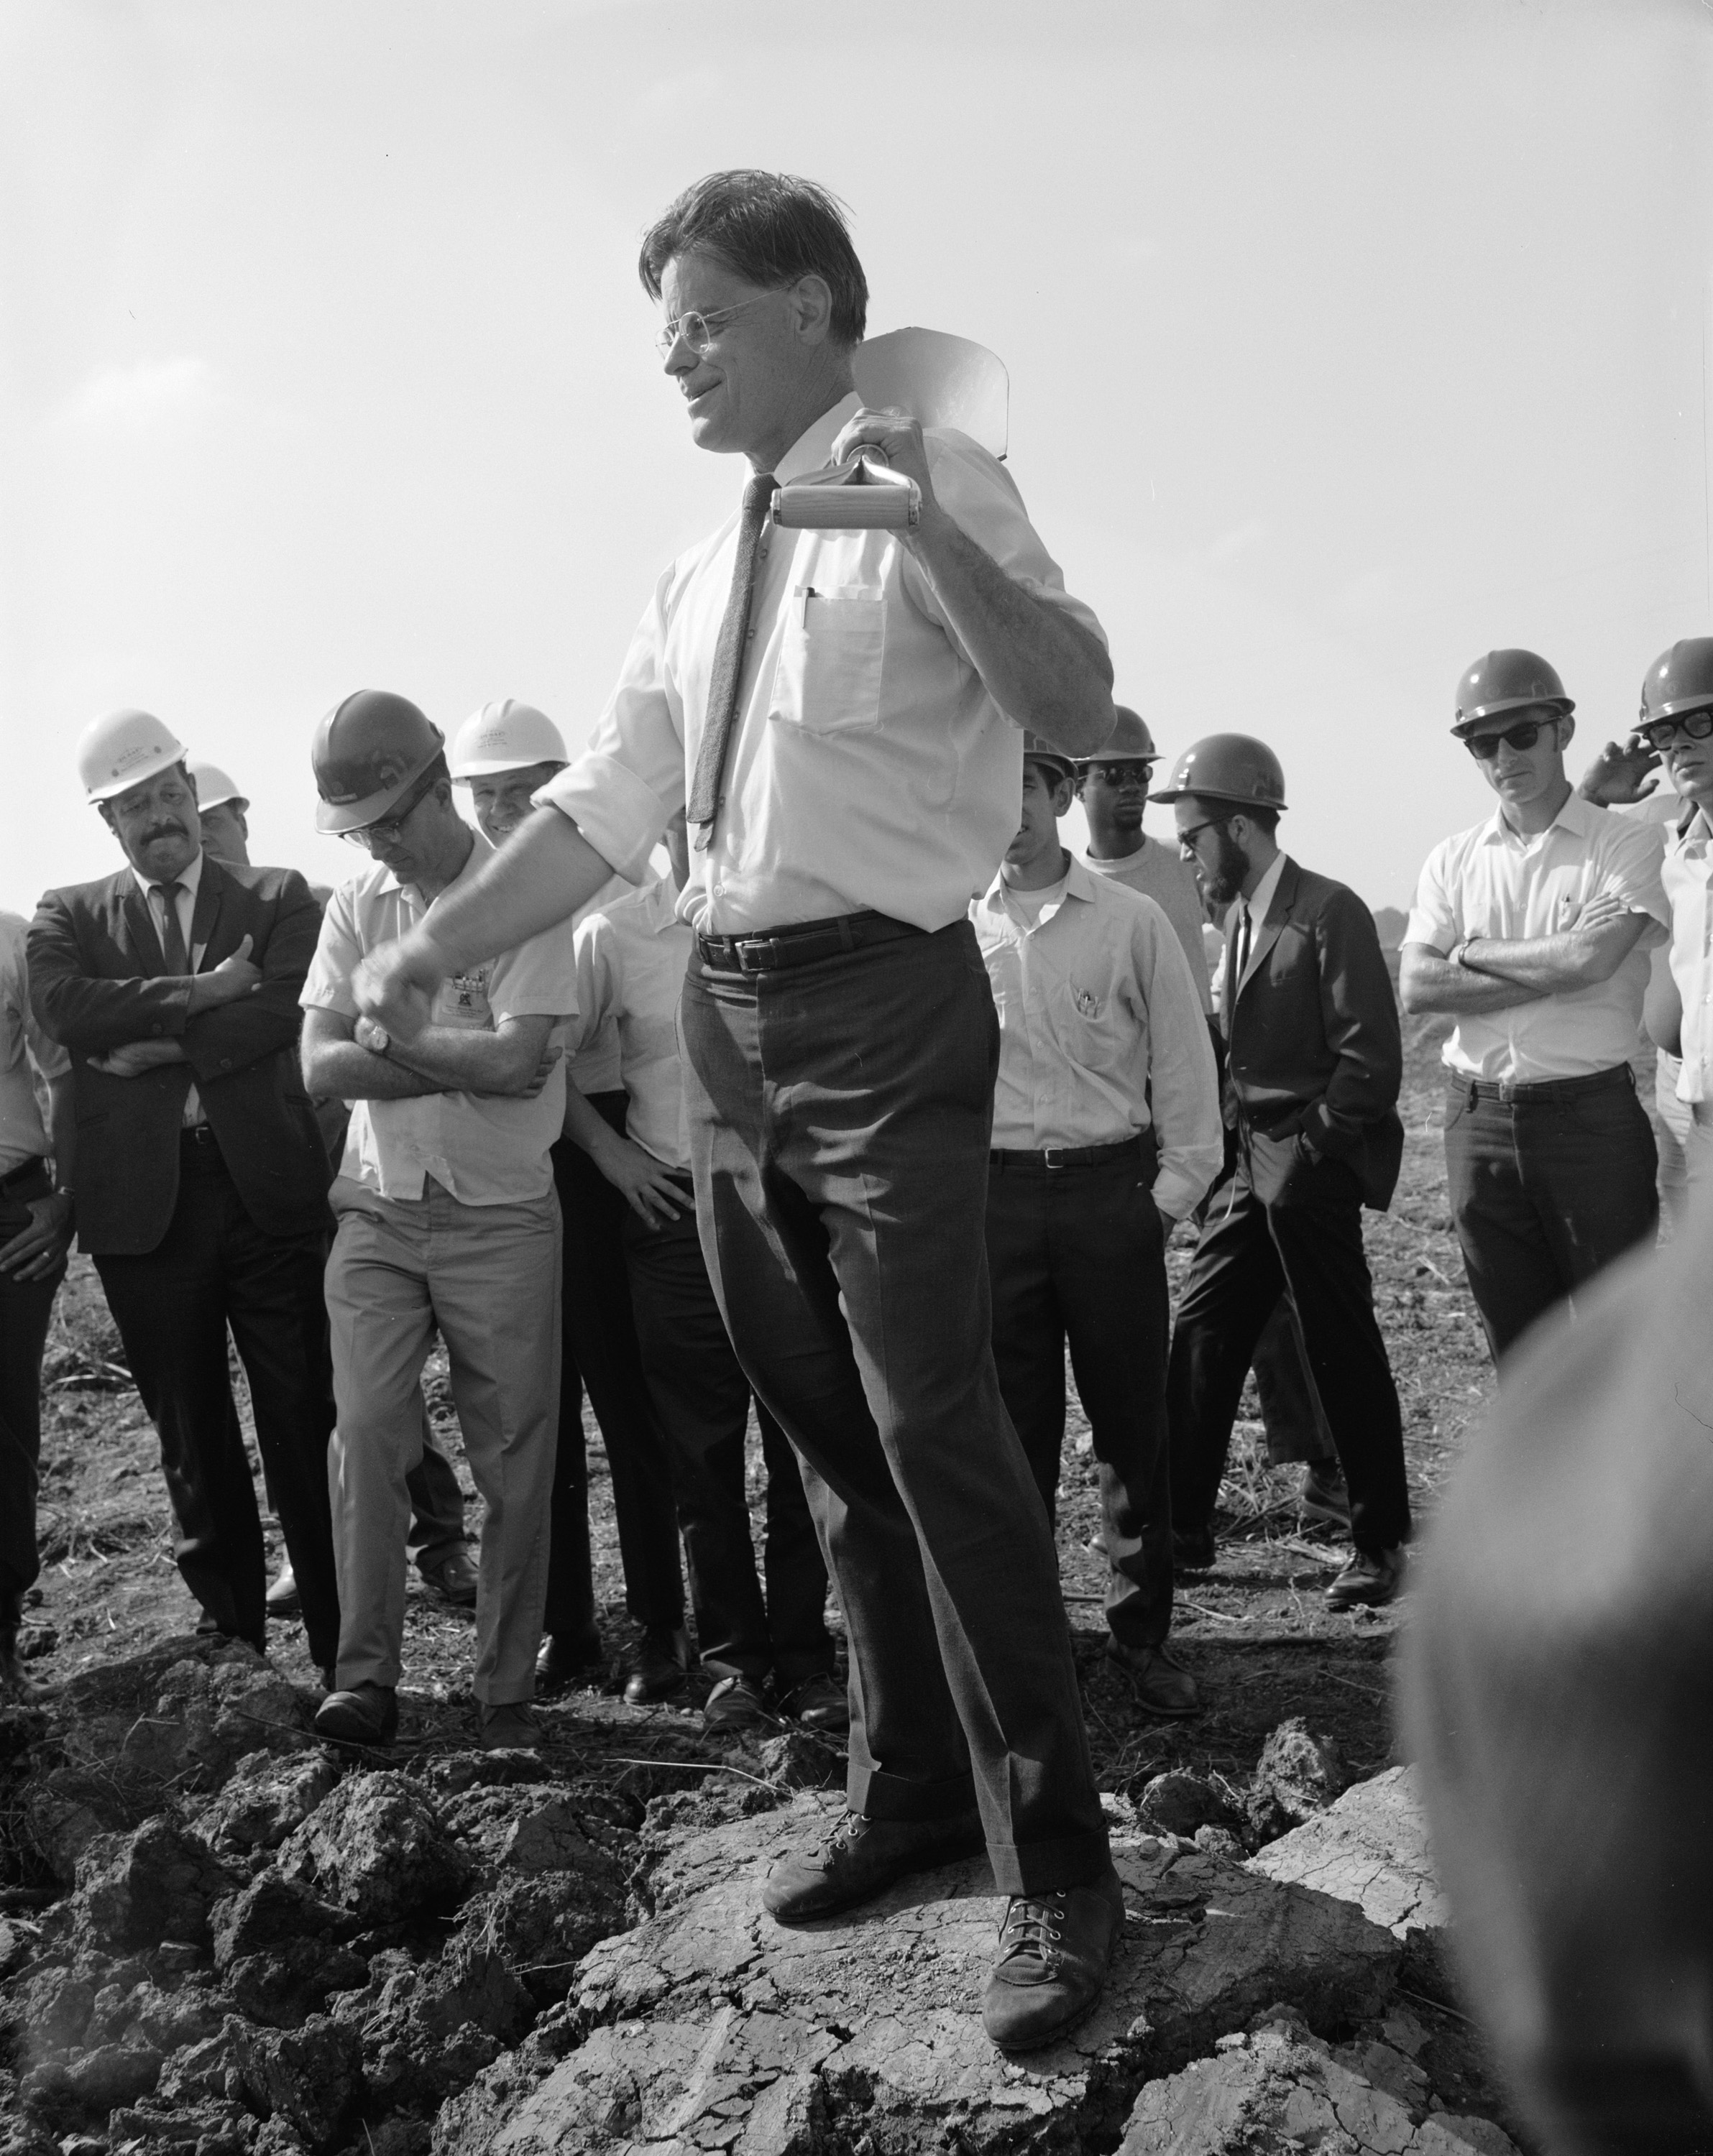 Robert R. Wilson at the 1968 groundbreaking of Fermilab